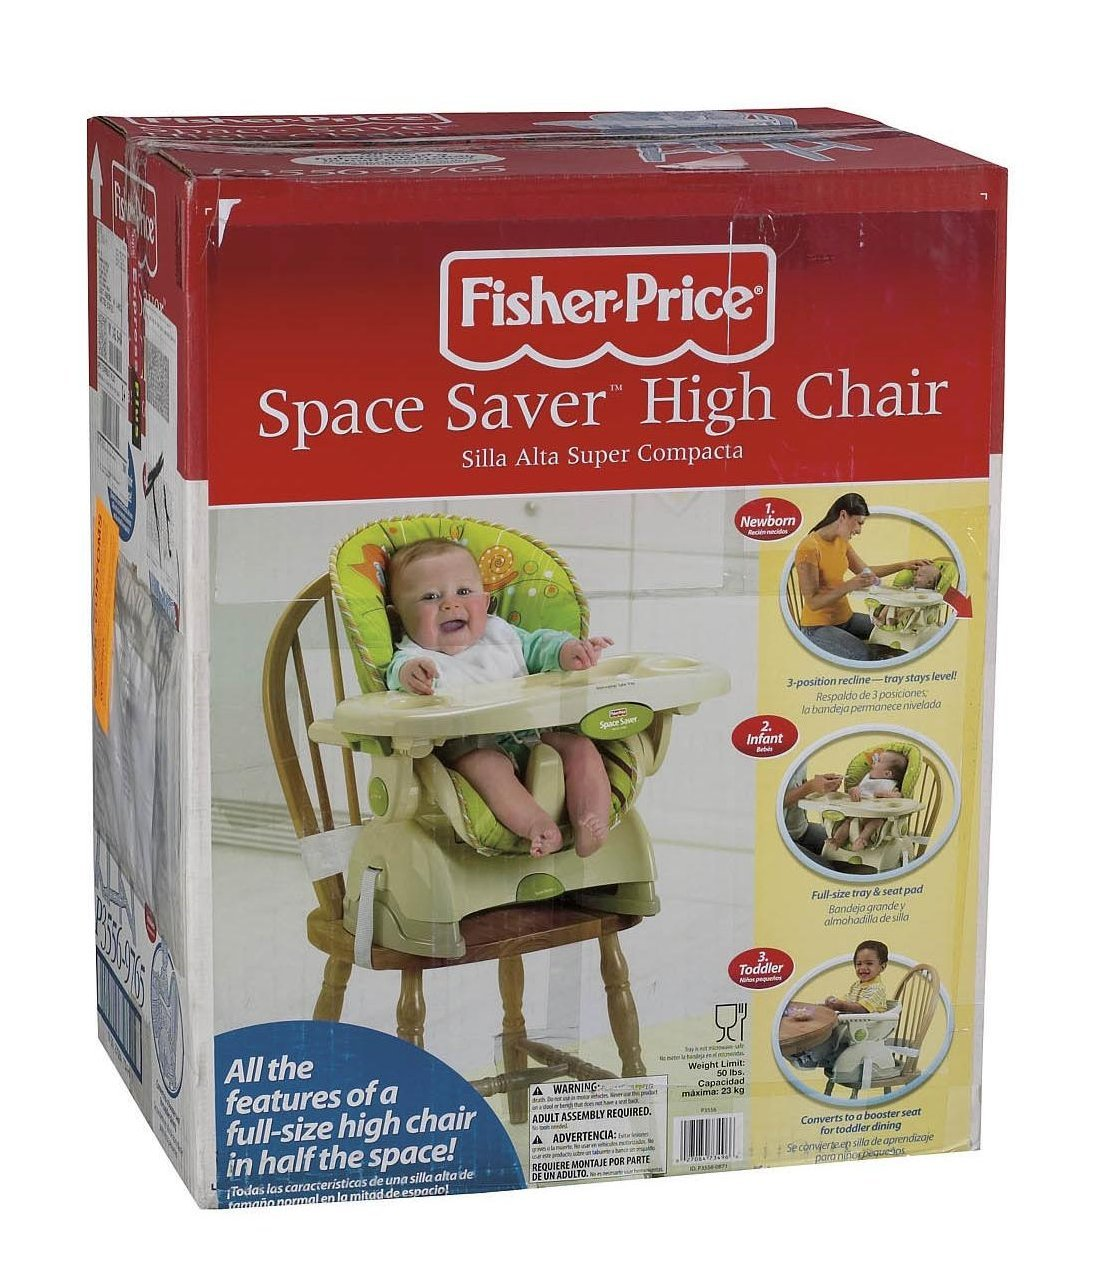 Amazon.com: Fisher-Price ahorro de espacio silla alta, color ...